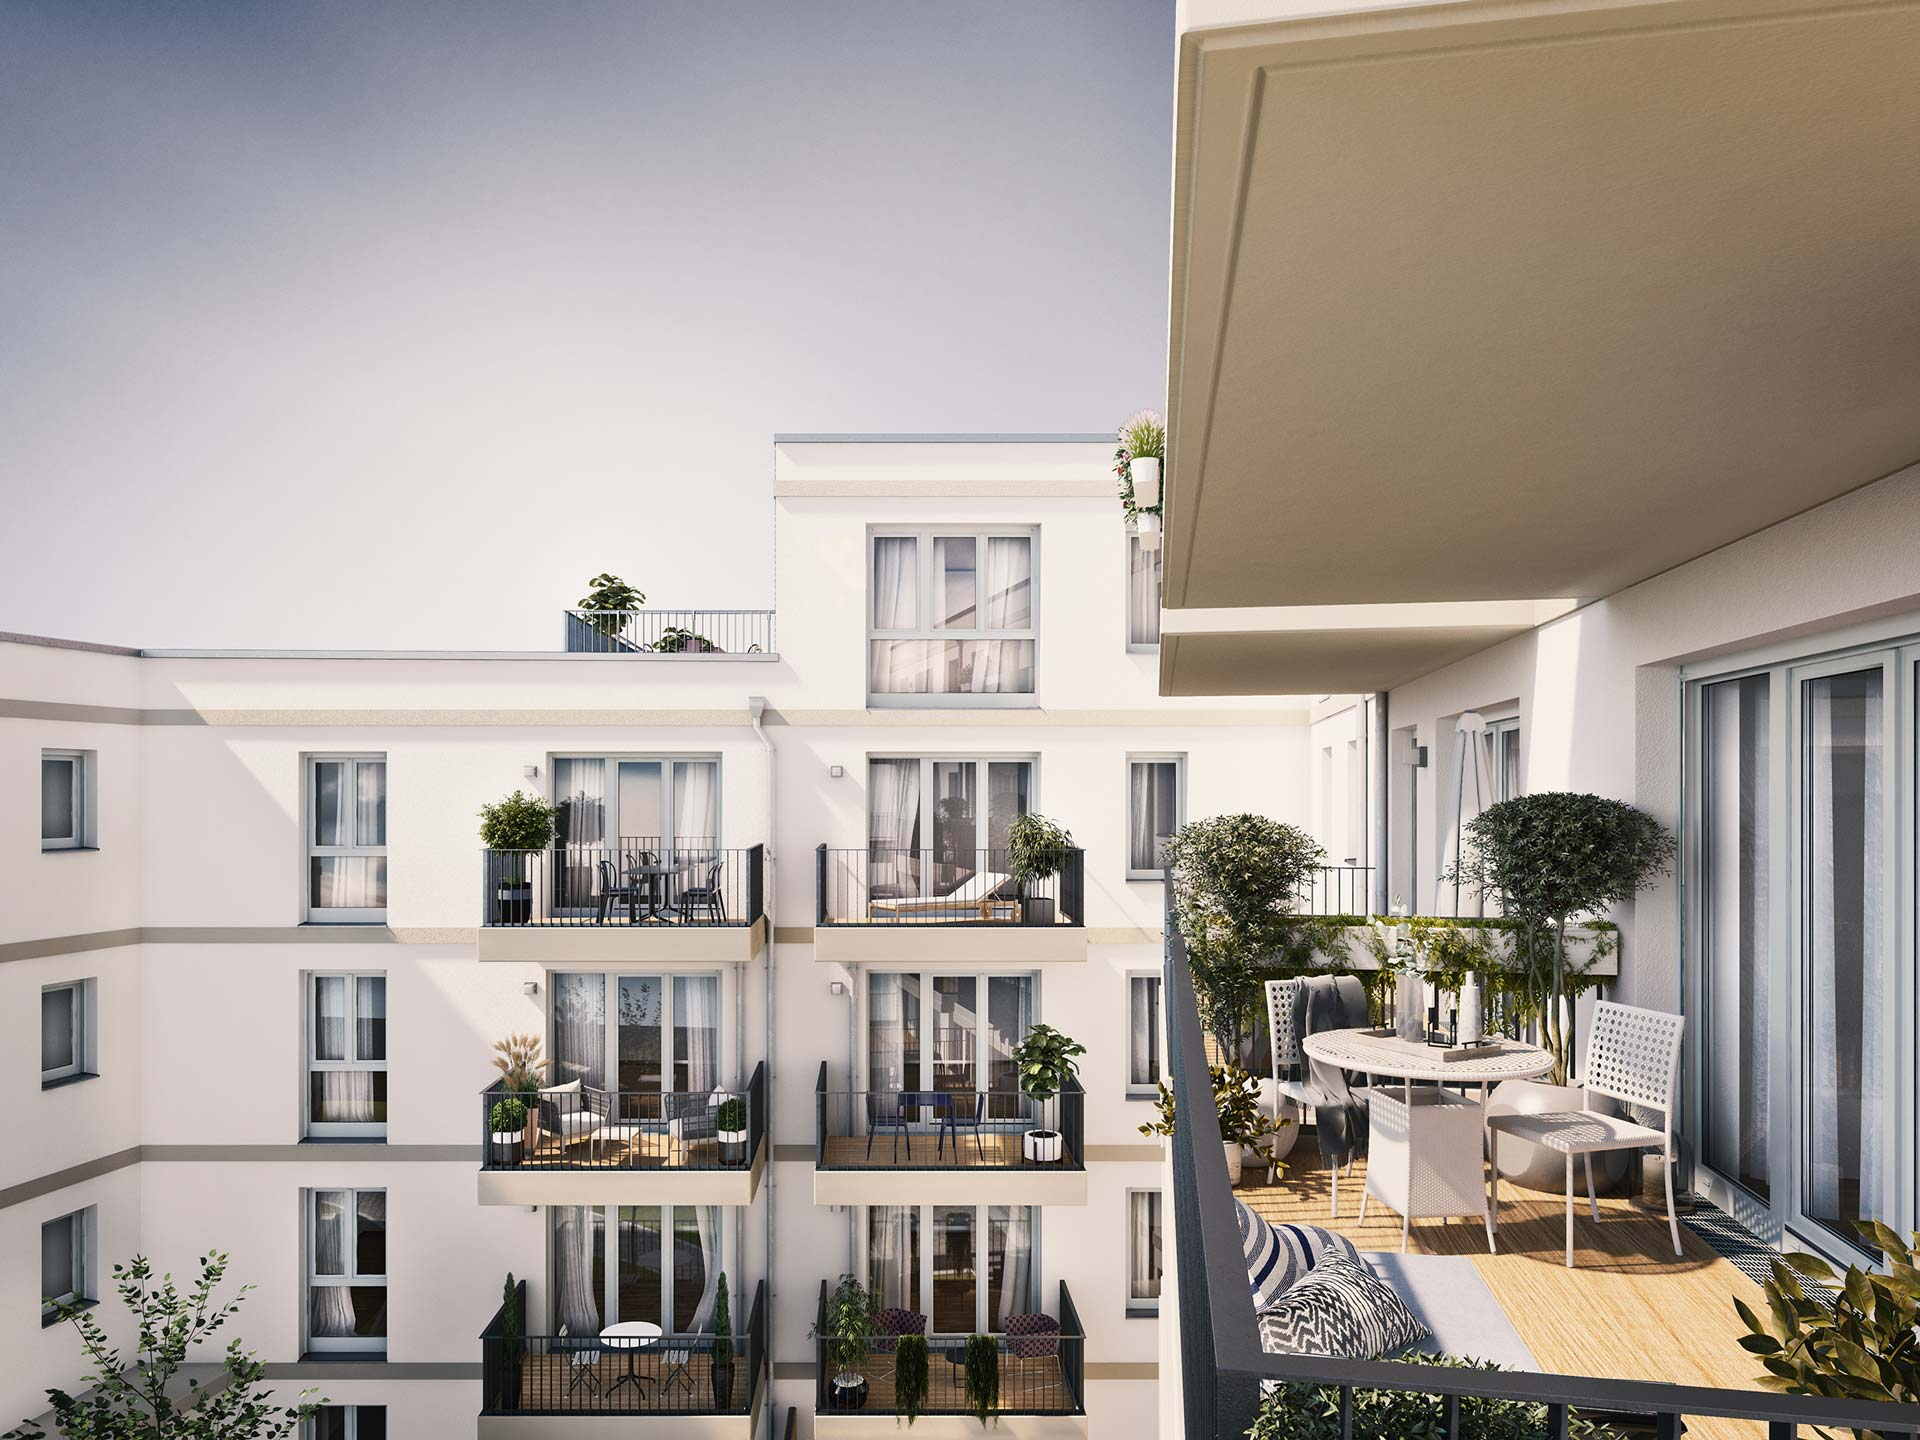 Airy balconies and an exclusive roof terrace with a view into the inner courtyard